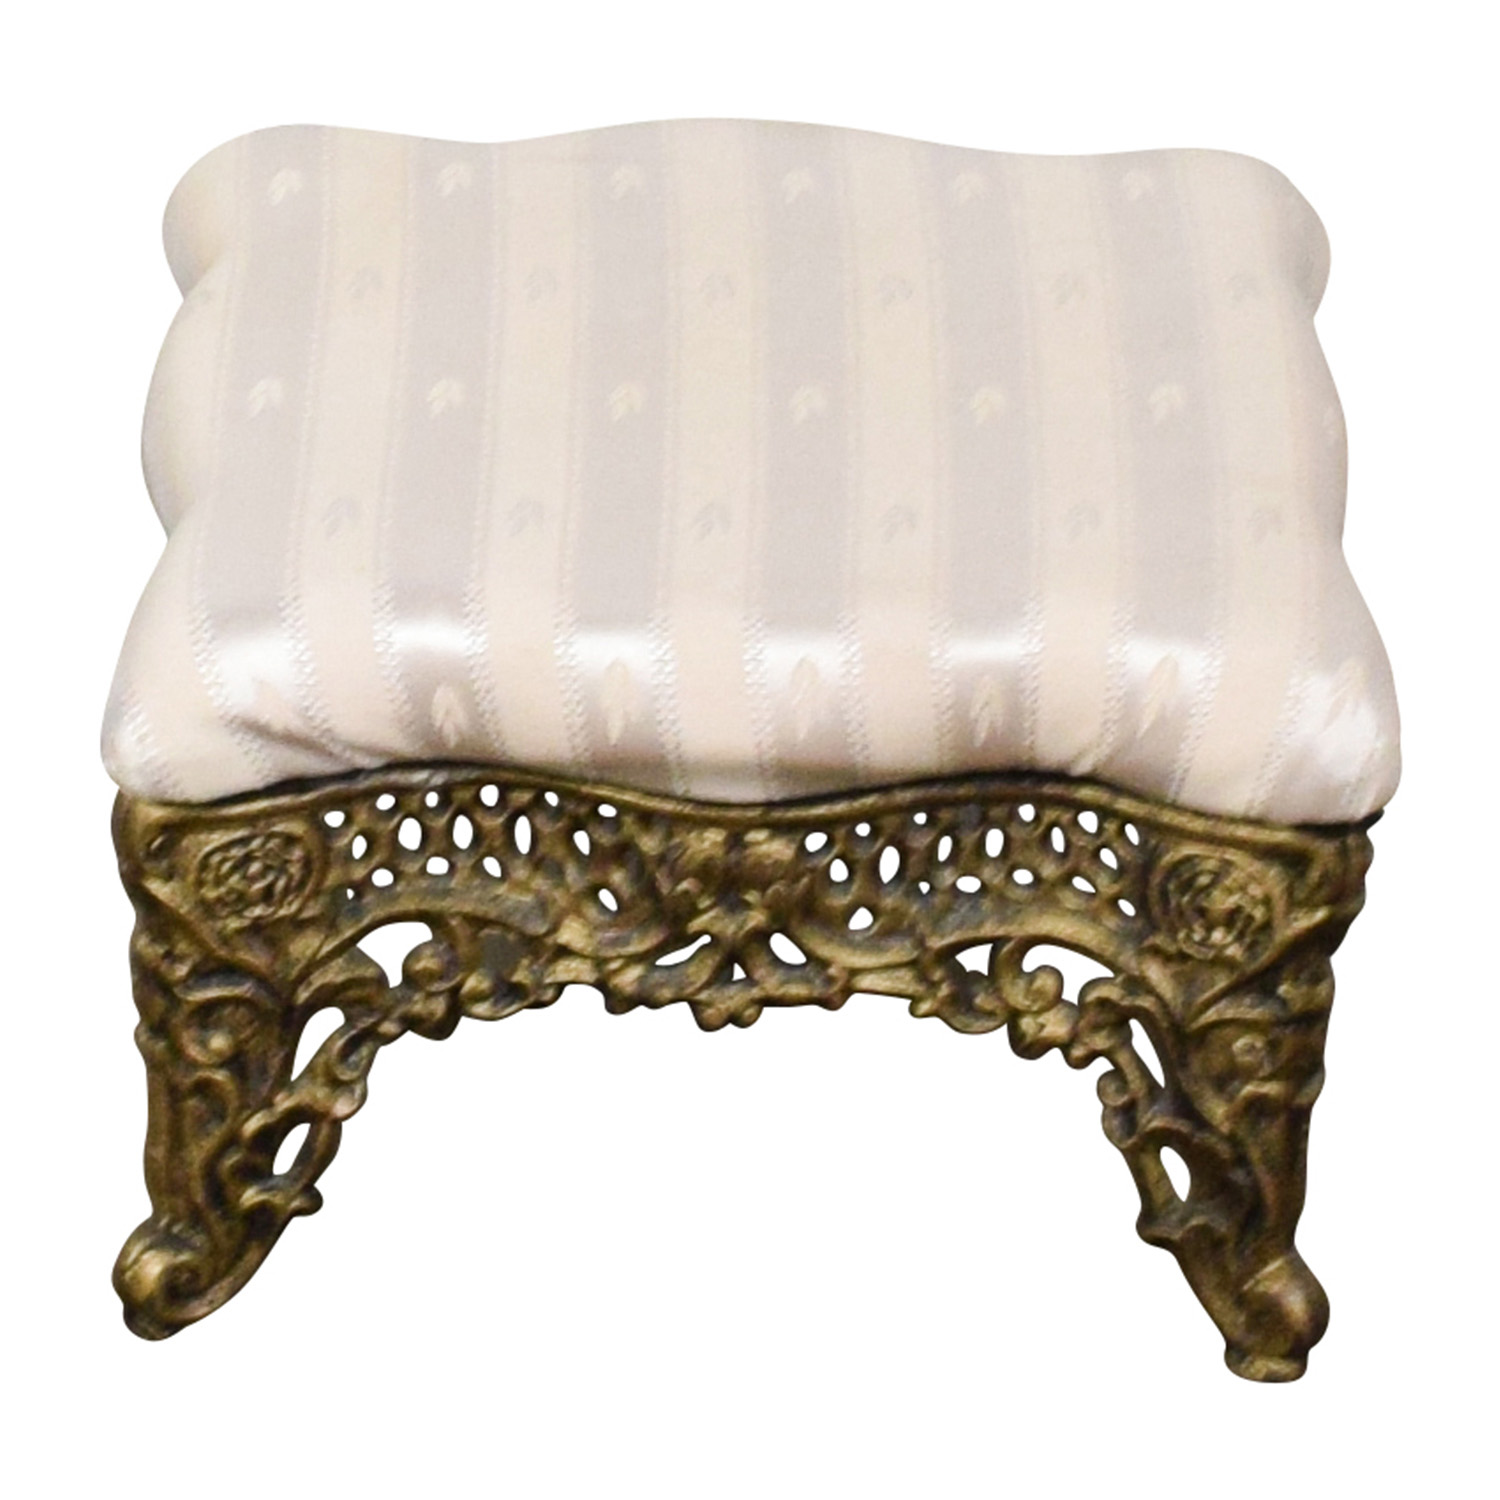 Horchow Horchow Beige Foot Stool with Gold Finish white